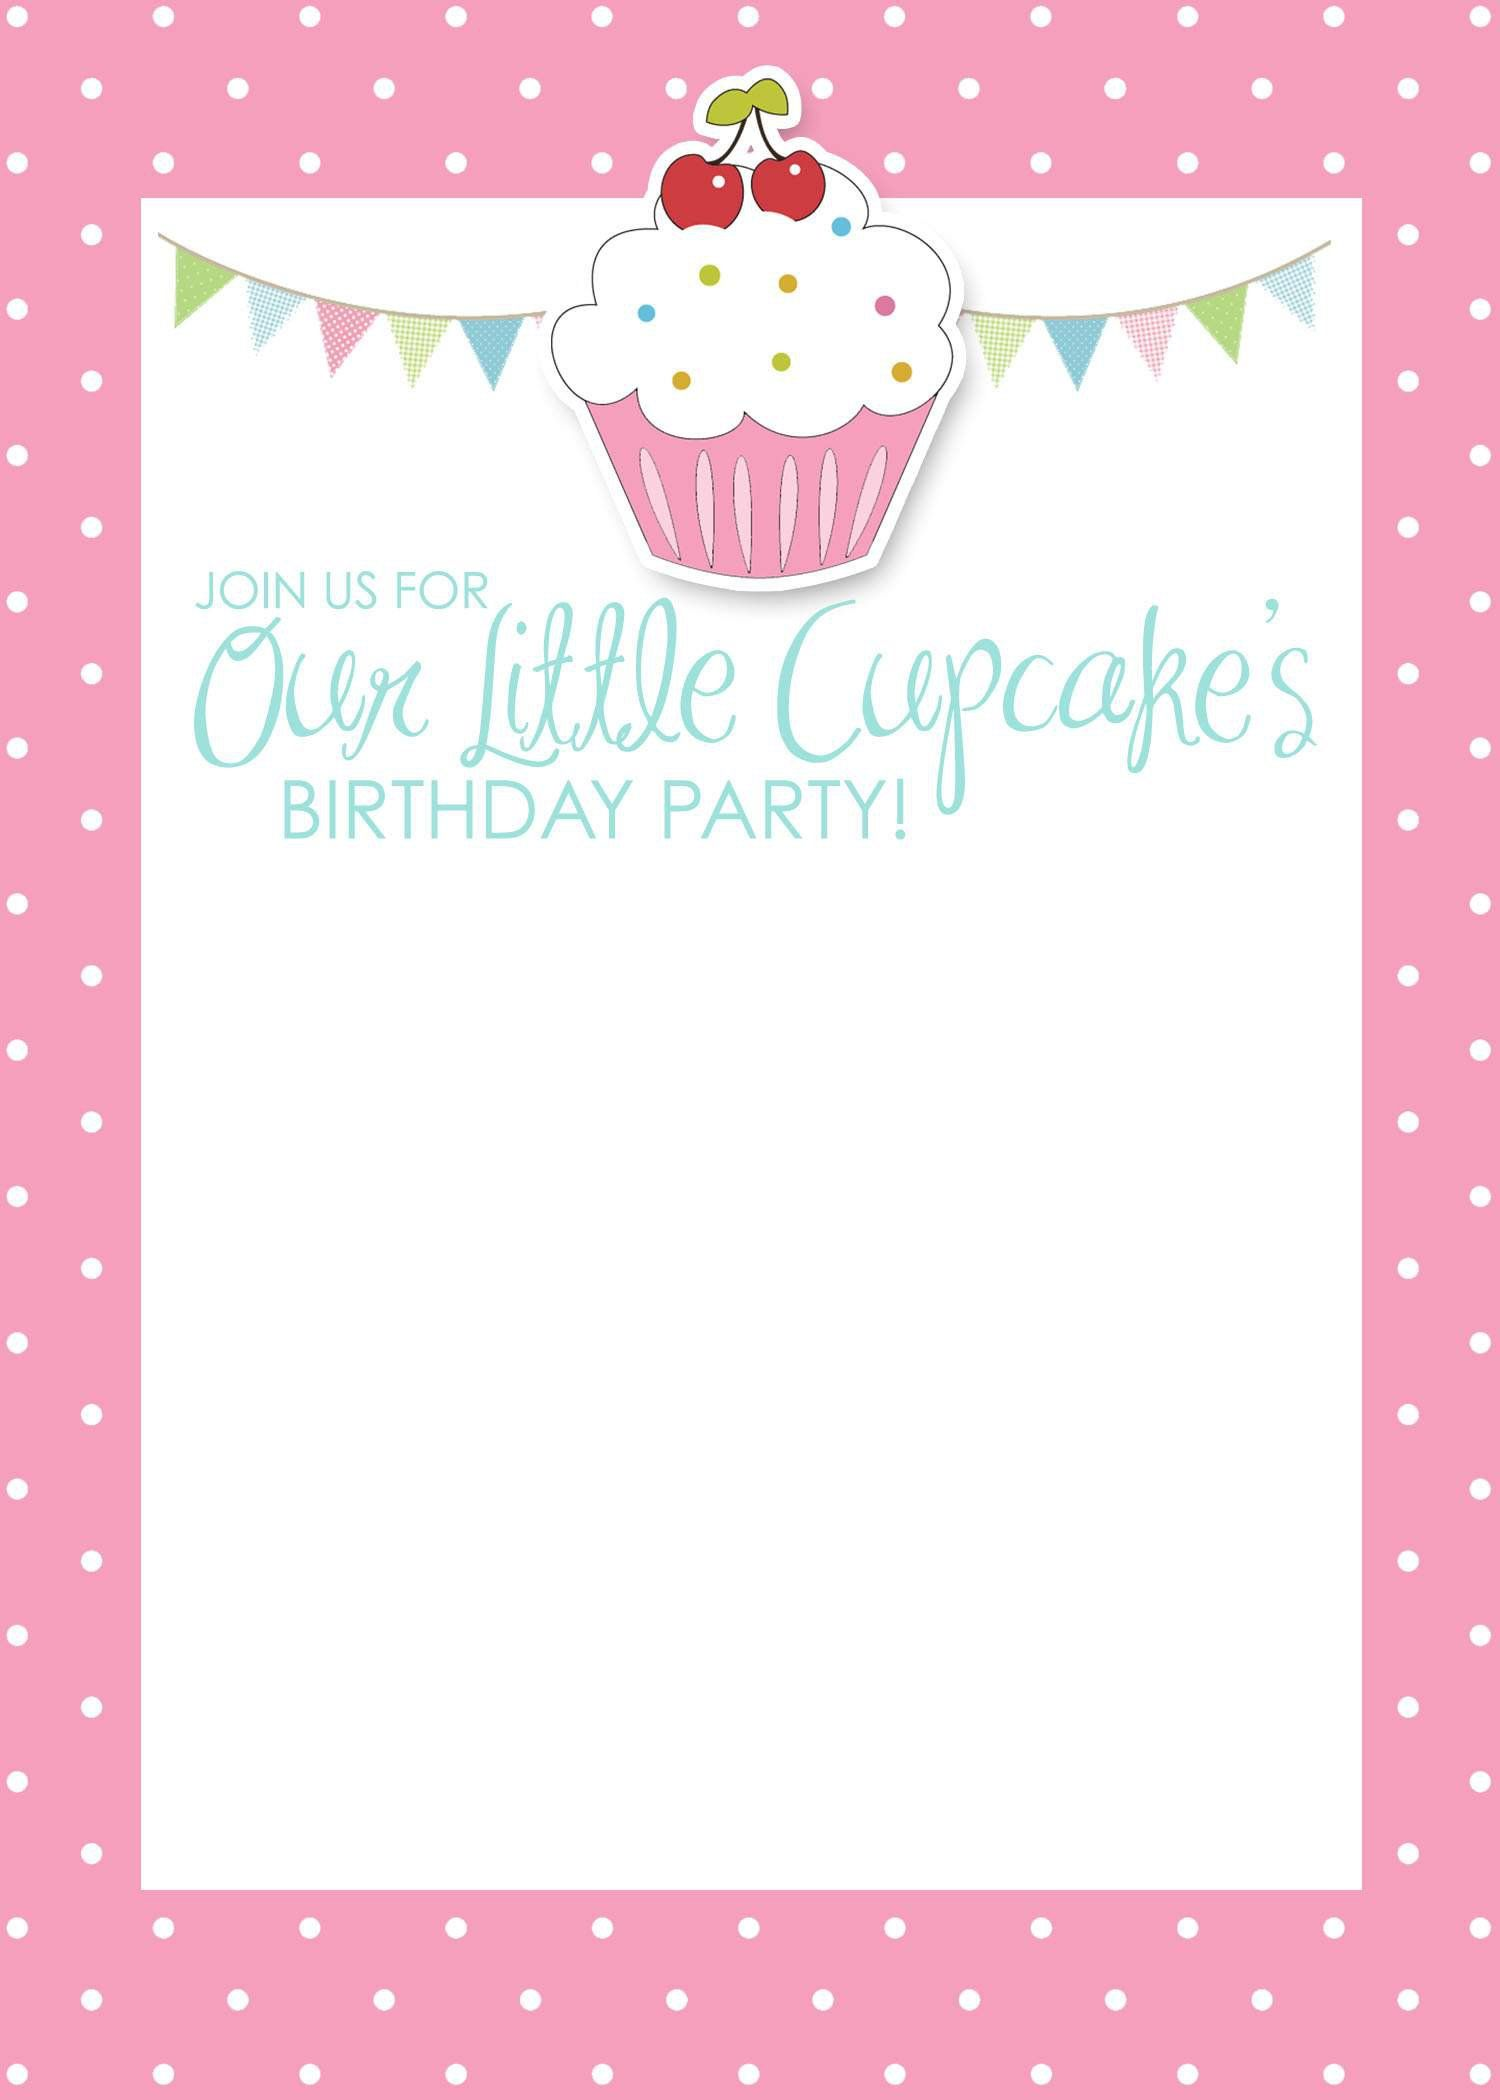 Invitation Cards For Birthday Party Template